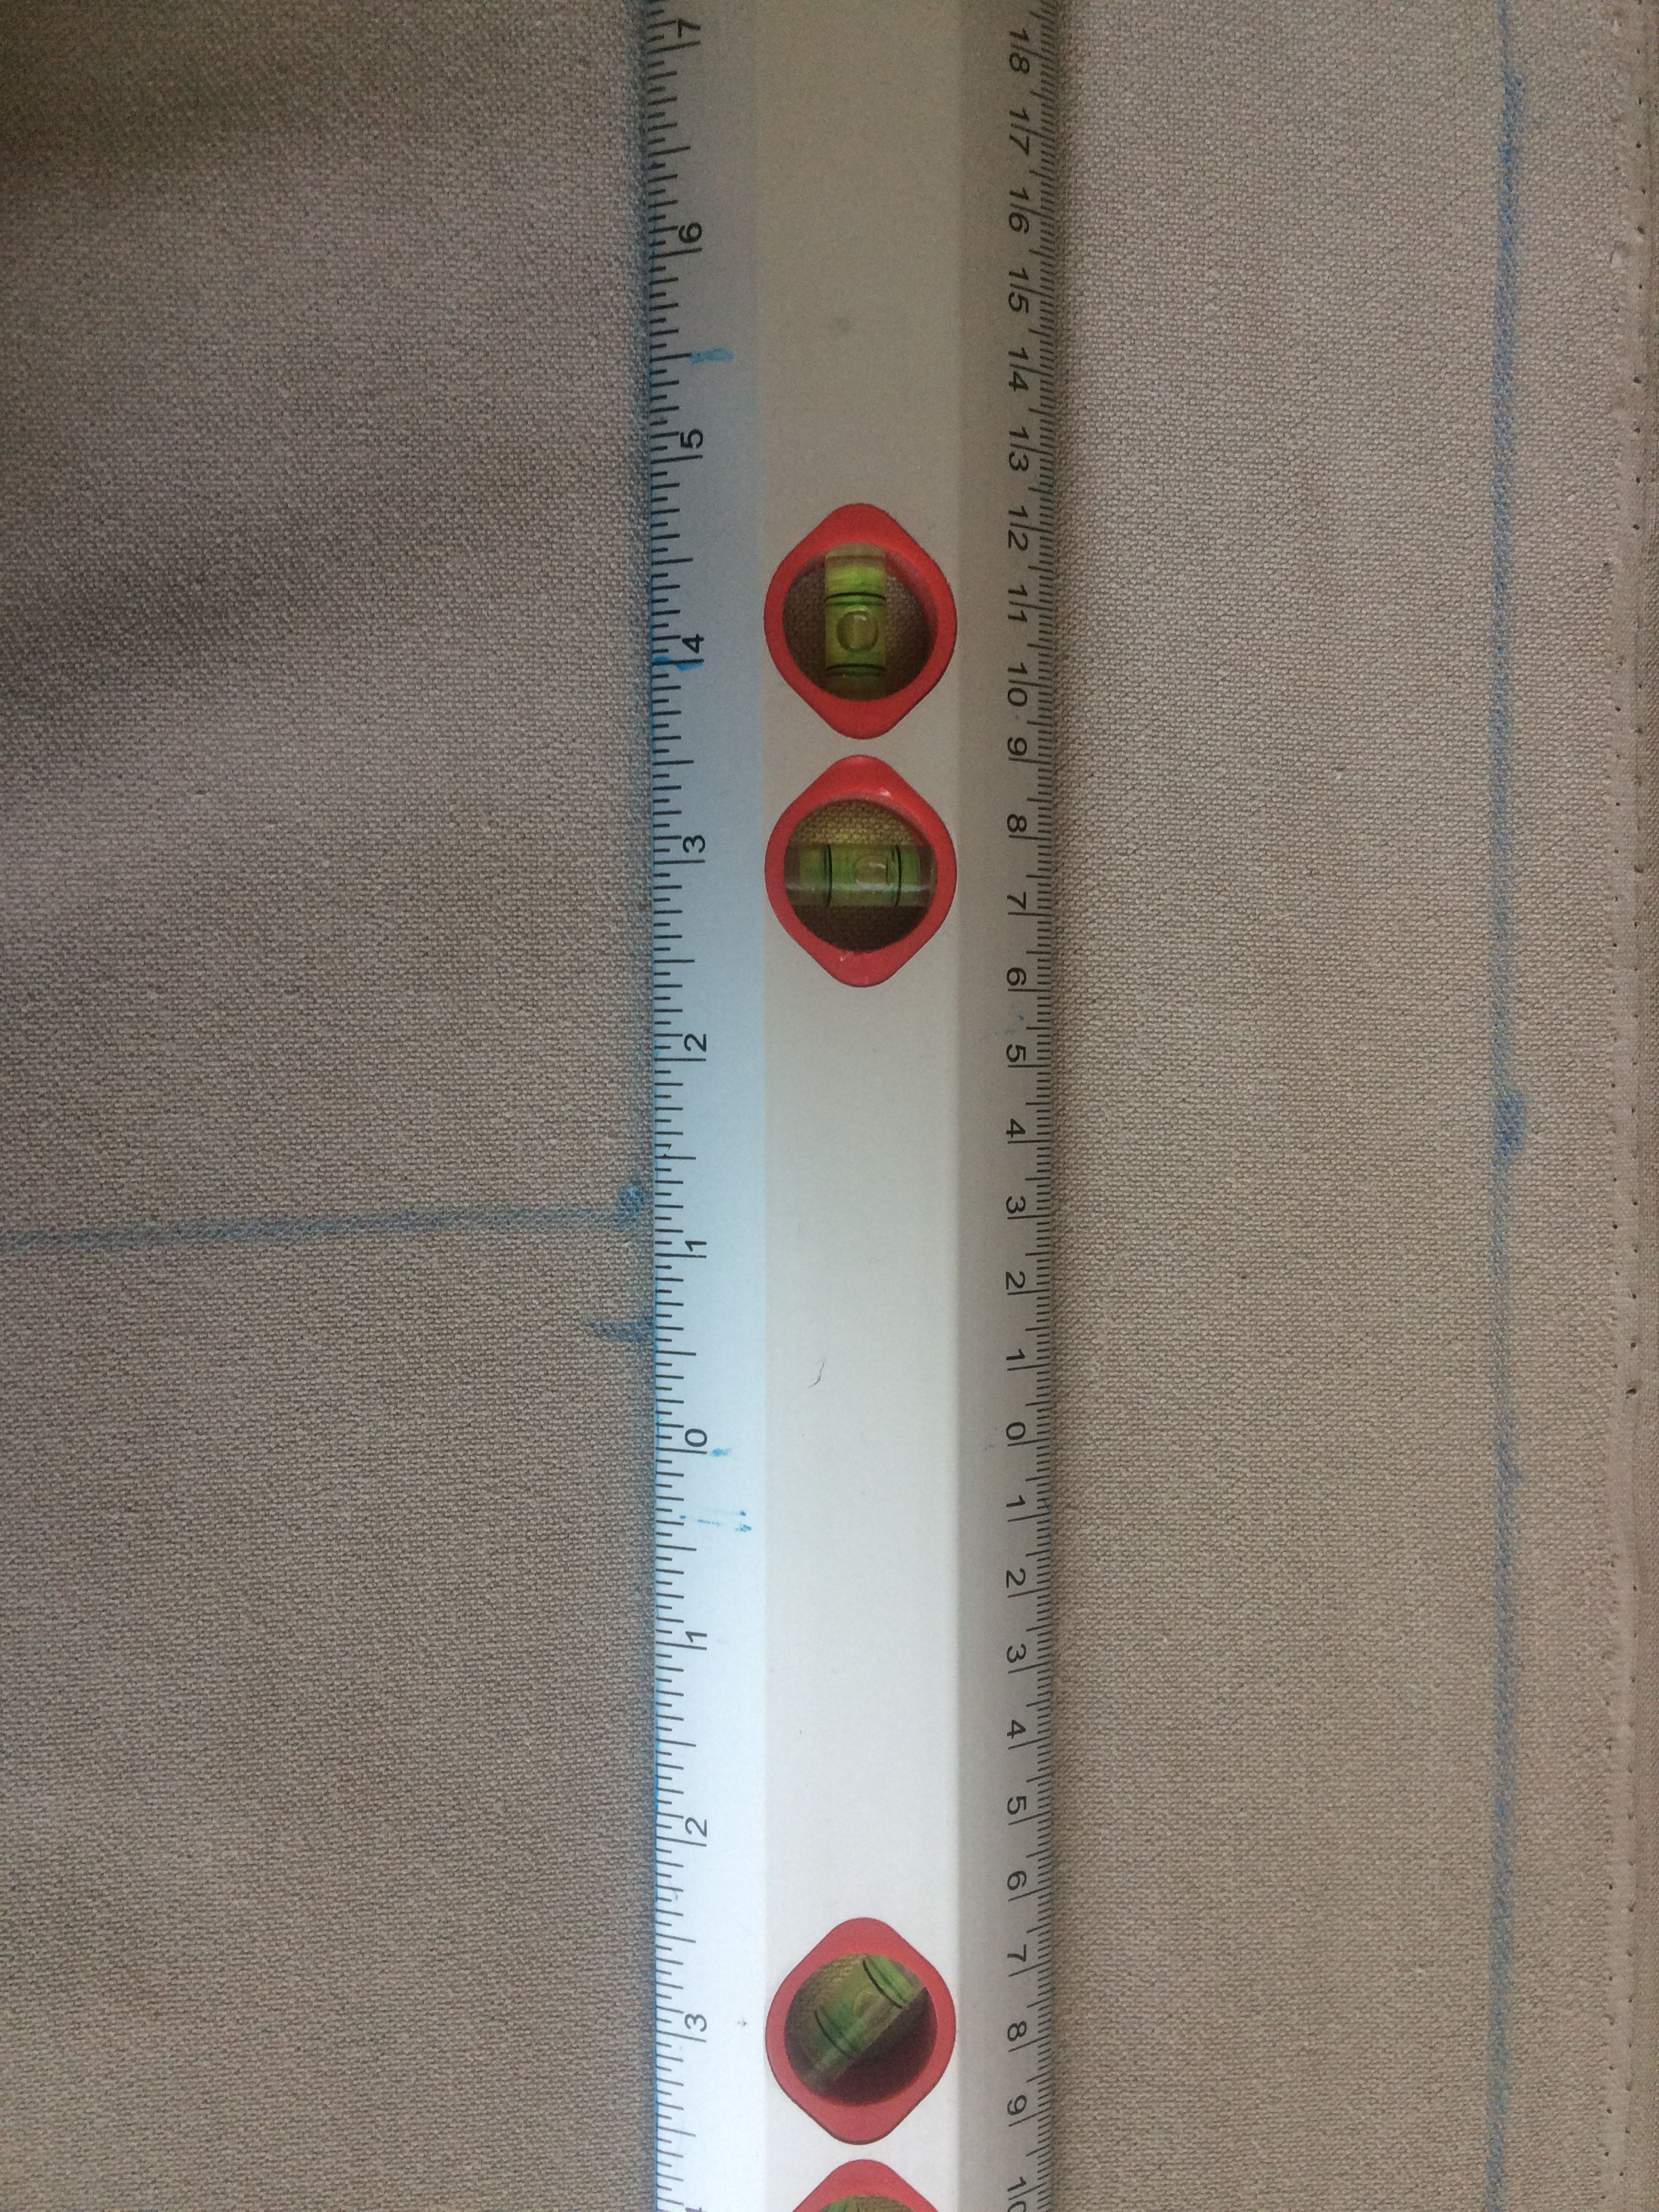 Measure twice cut once.  Heard this advice several times but very true. Use hubbies tools too BONUS !!